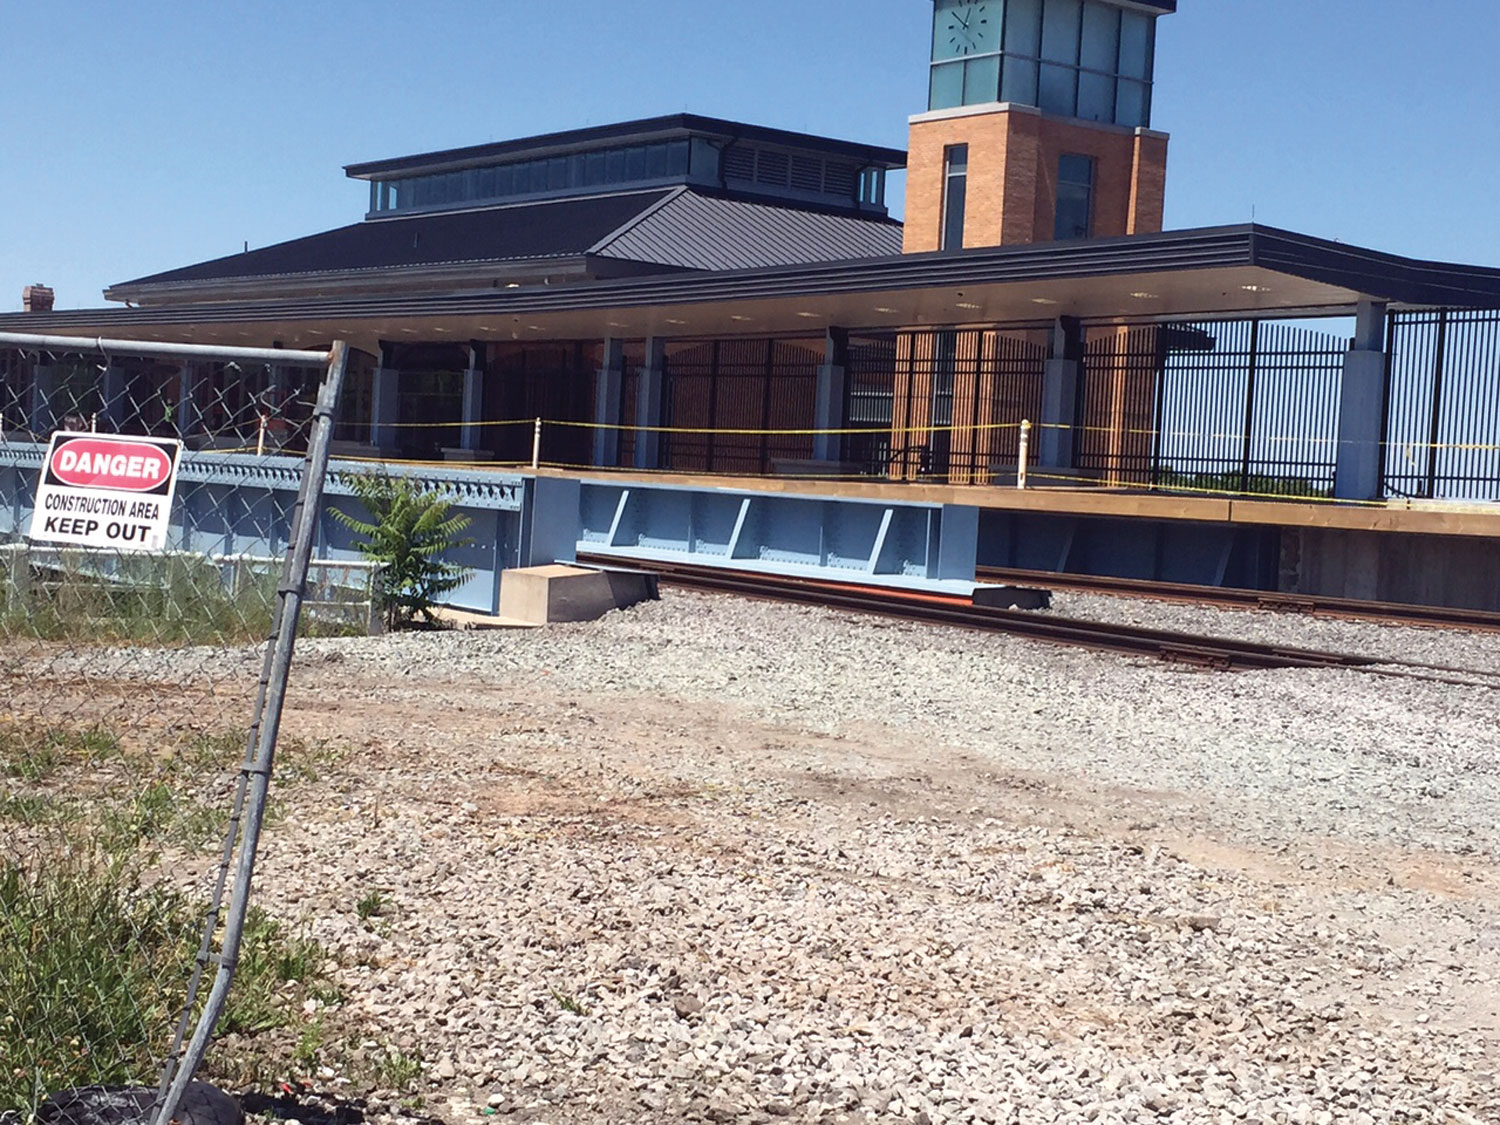 Train station nears completion but it doesn't matter. It's going to be empty anyway.